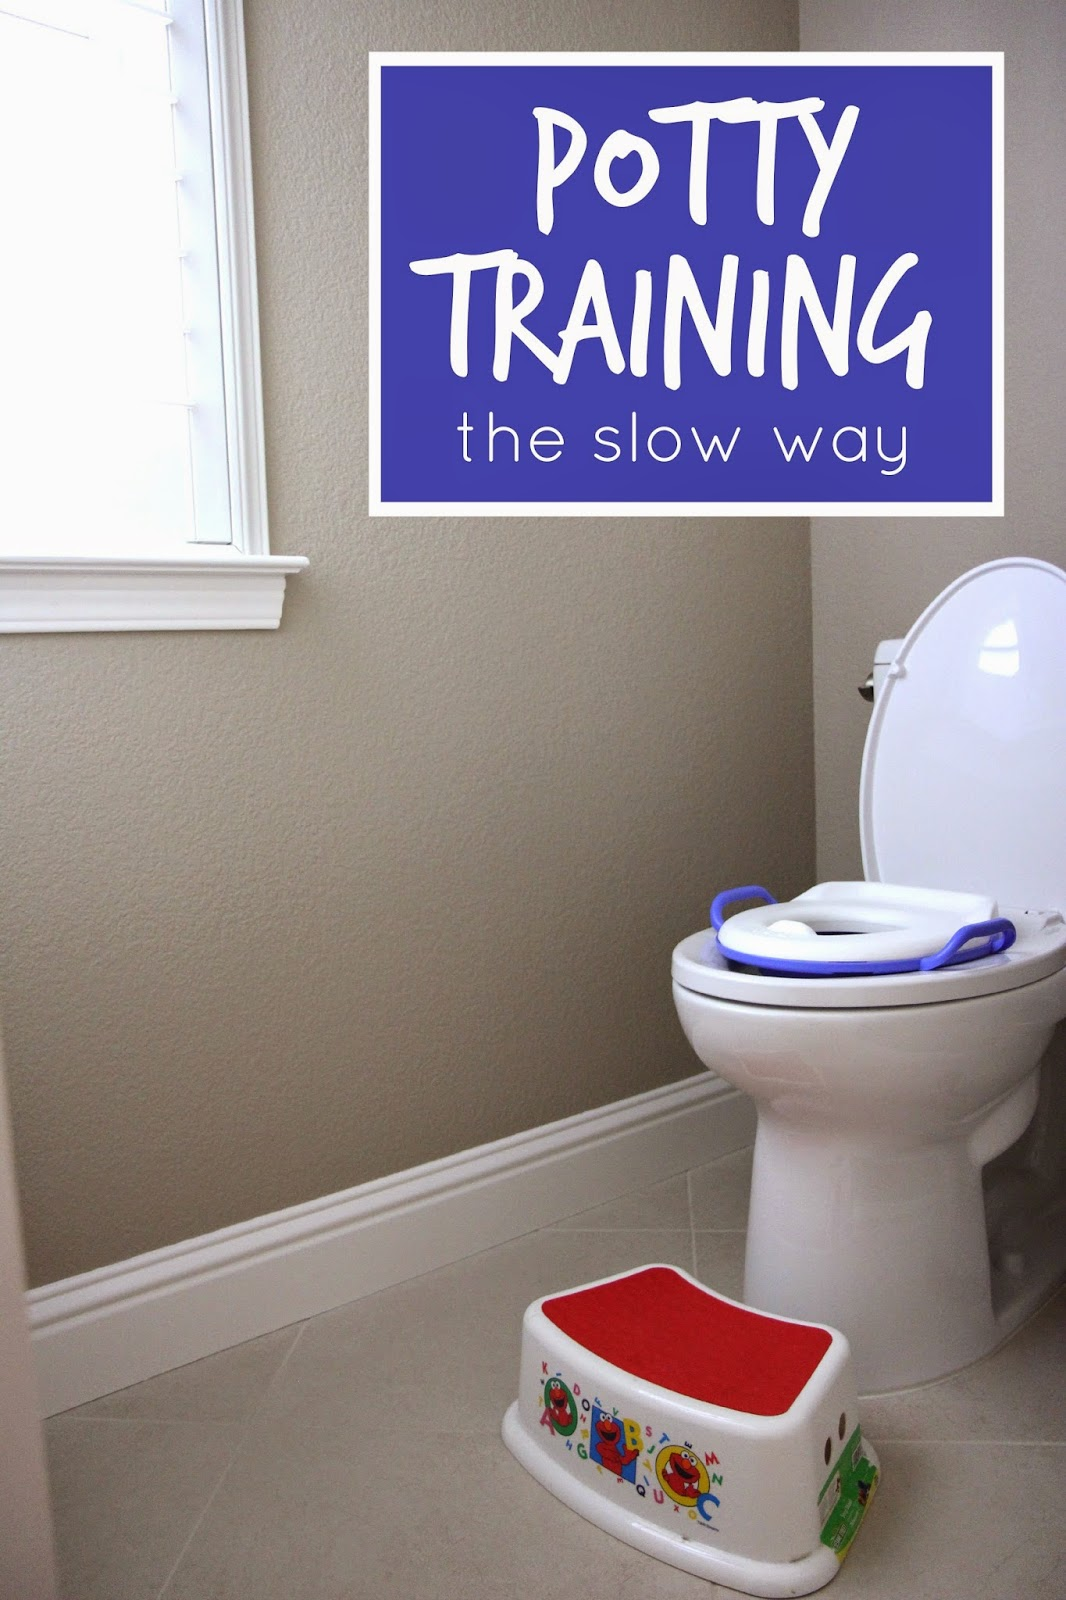 If you have the time, you might want to try potty training the slow way!